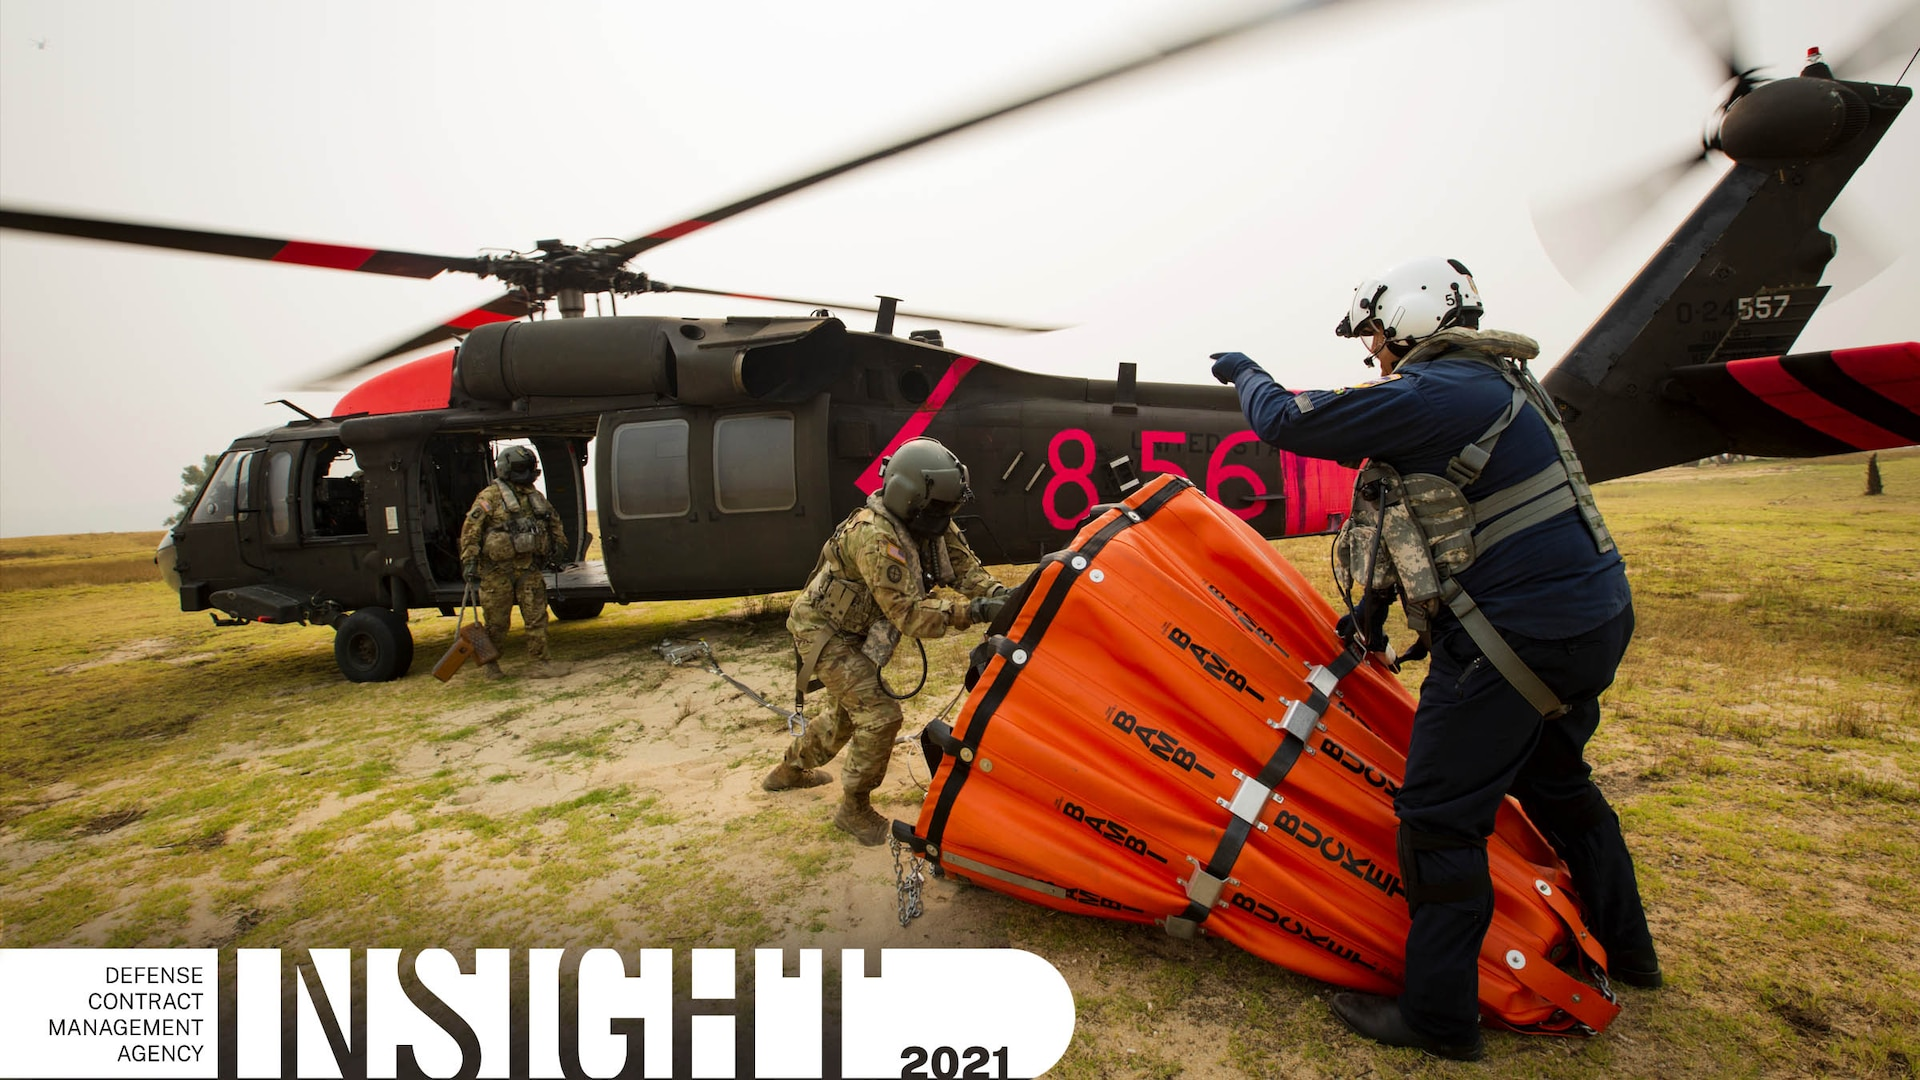 Three UH-60 Black Hawk helicopter crew members conduct training.